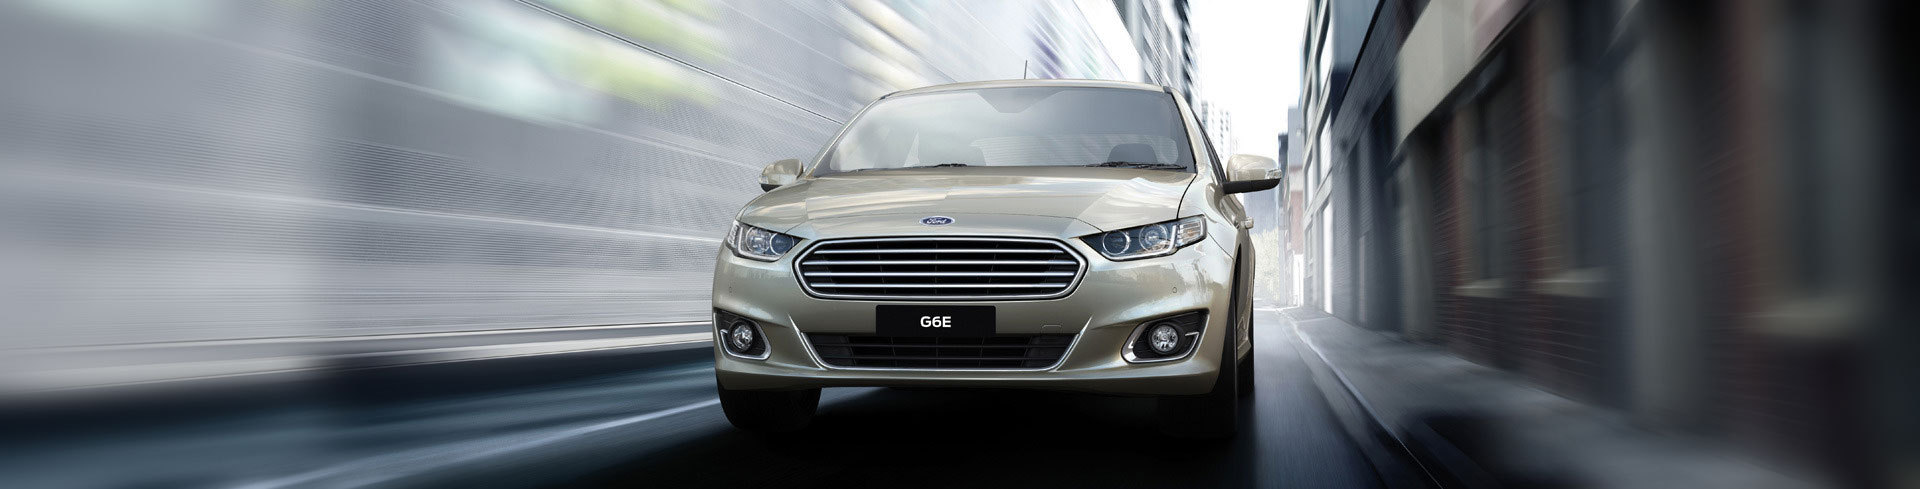 New Ford G6E